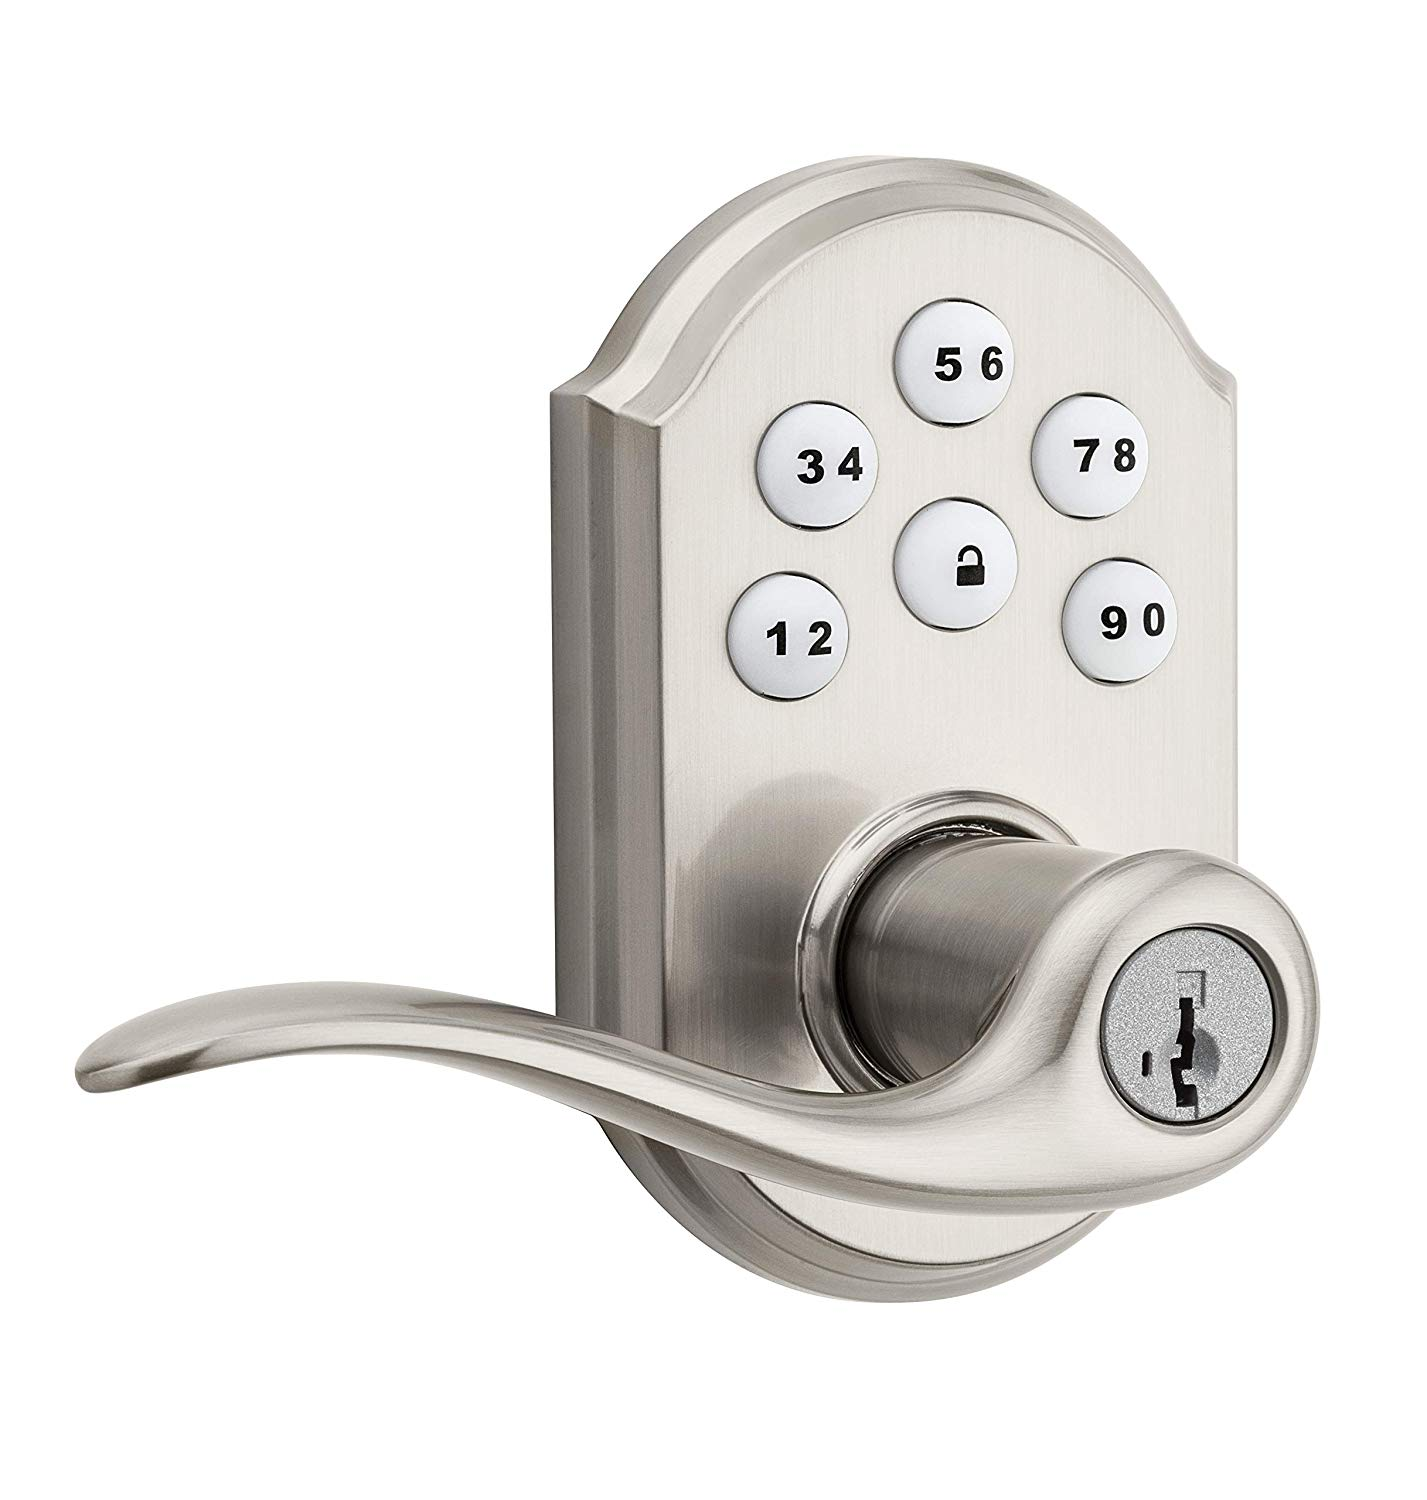 99120-037 KWIKSET SmartCode Z-Wave Lever Polished Brass ************************* SPECIAL ORDER ITEM NO RETURNS OR SUBJECT TO RESTOCK FEE *************************